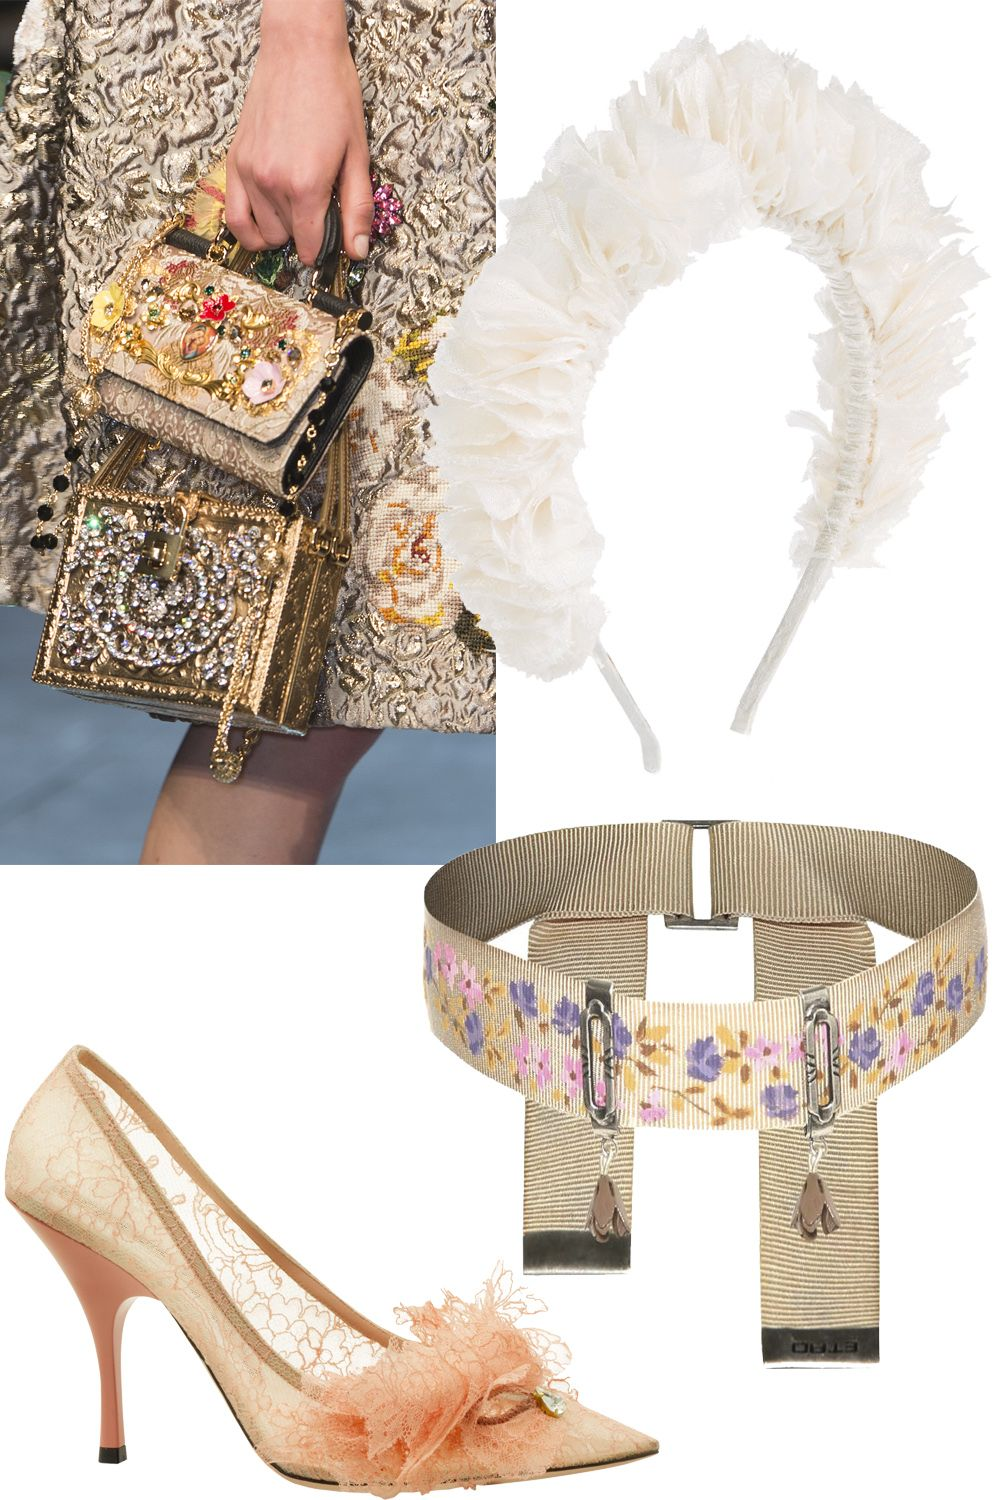 "<p>Lace flounces, encrusted minaudieres, brocade, ribbon collars and ruffled crowns take this look to the next level.</p><p><em>Dolce & Gabbana Spring 2016 handbags; Rochas Spring 2016 lace pump; Etro Spring 2016 ribbon choker; YUNOTME silk headband, $300, <a href=""https://www.net-a-porter.com/us/en/product/648259/yunotme/flock-silk-jacquard-headband"">net-a-porter.com</a>.</em></p>"